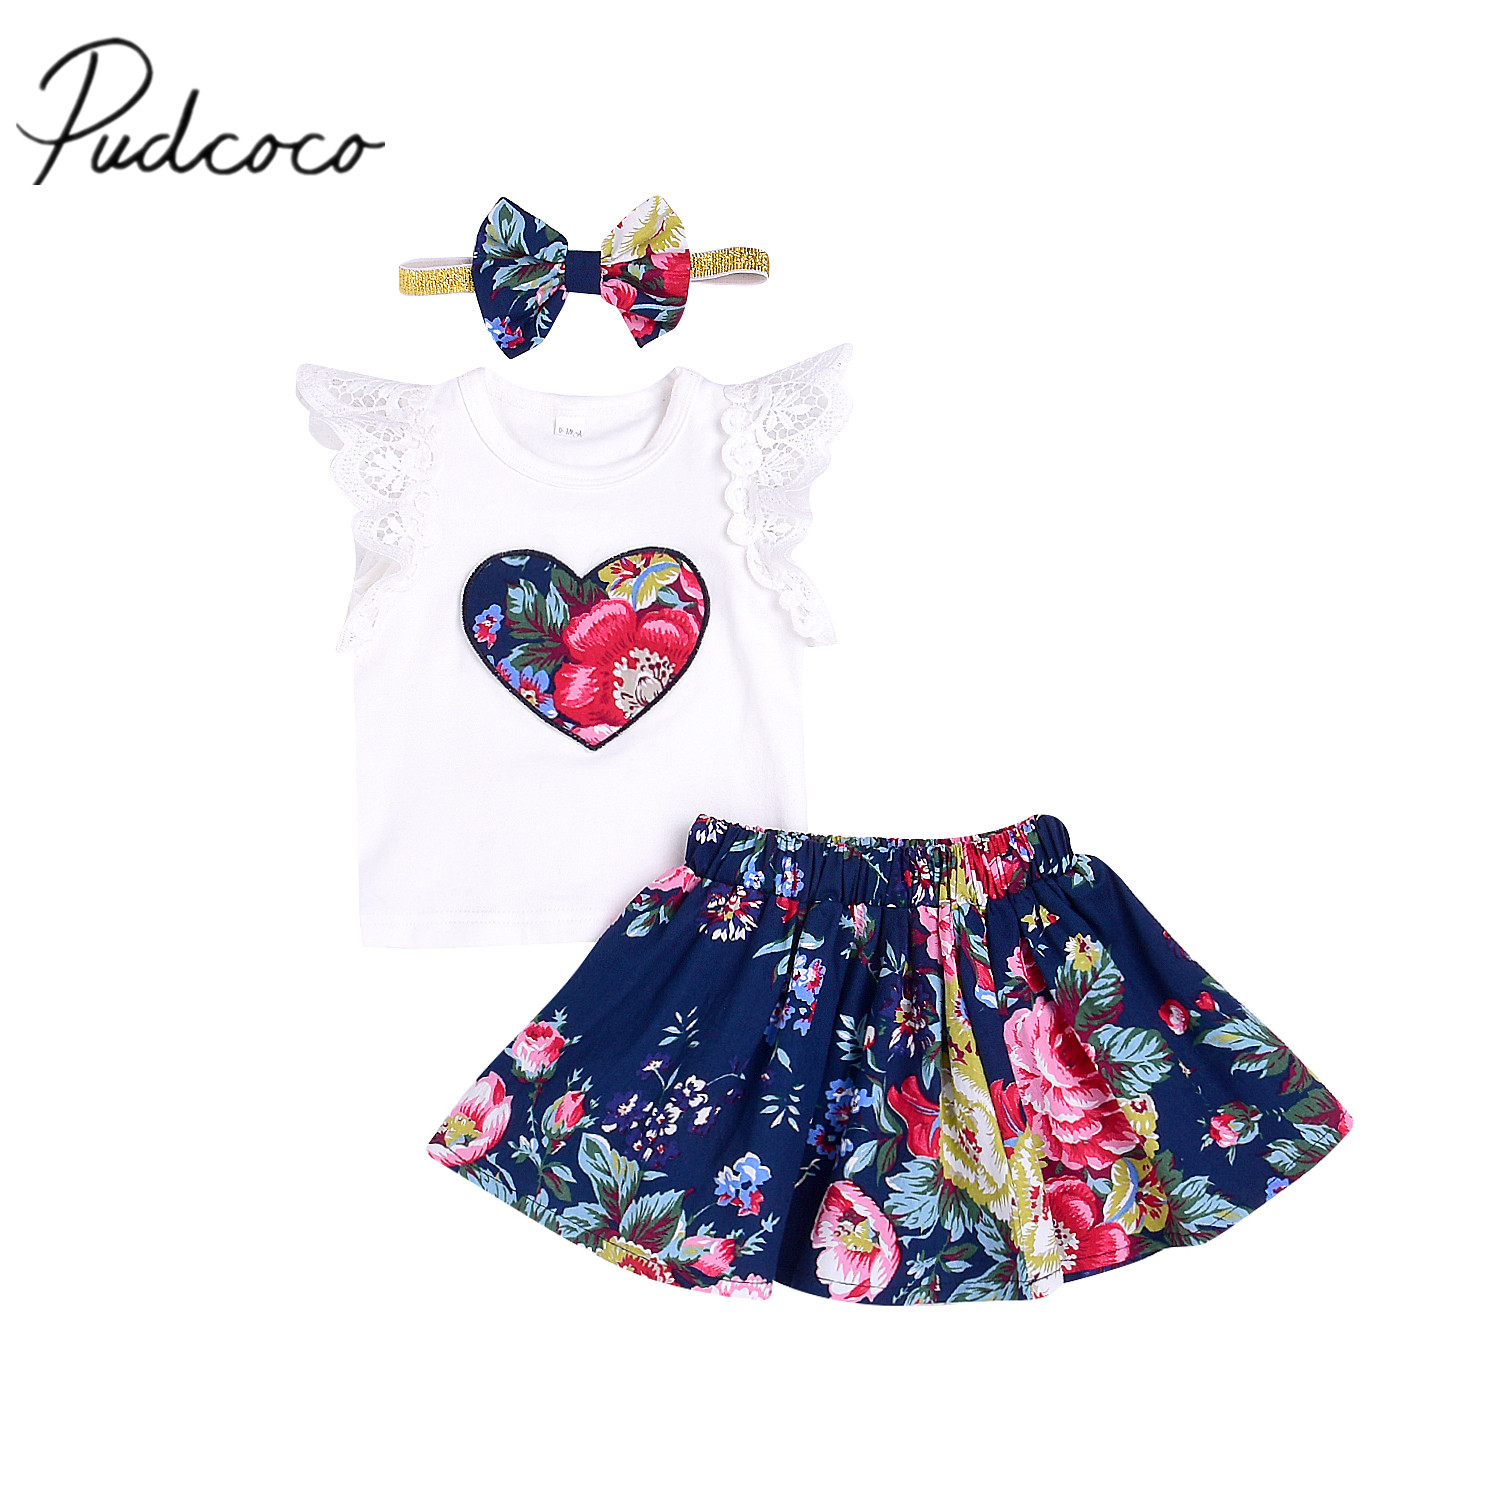 2018 Brand New Summer Toddler Infant Child Kids Baby Girls T-shirt Tops Skirt Headband 3Pcs Outfits Set Floral Clothes Oufits